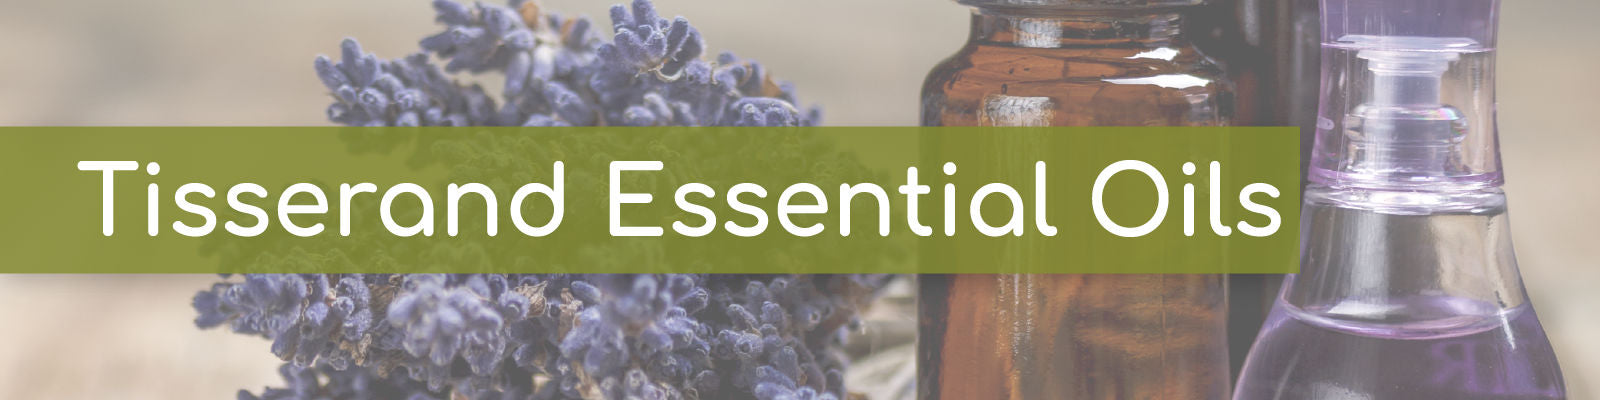 Tisserand essential oil collection